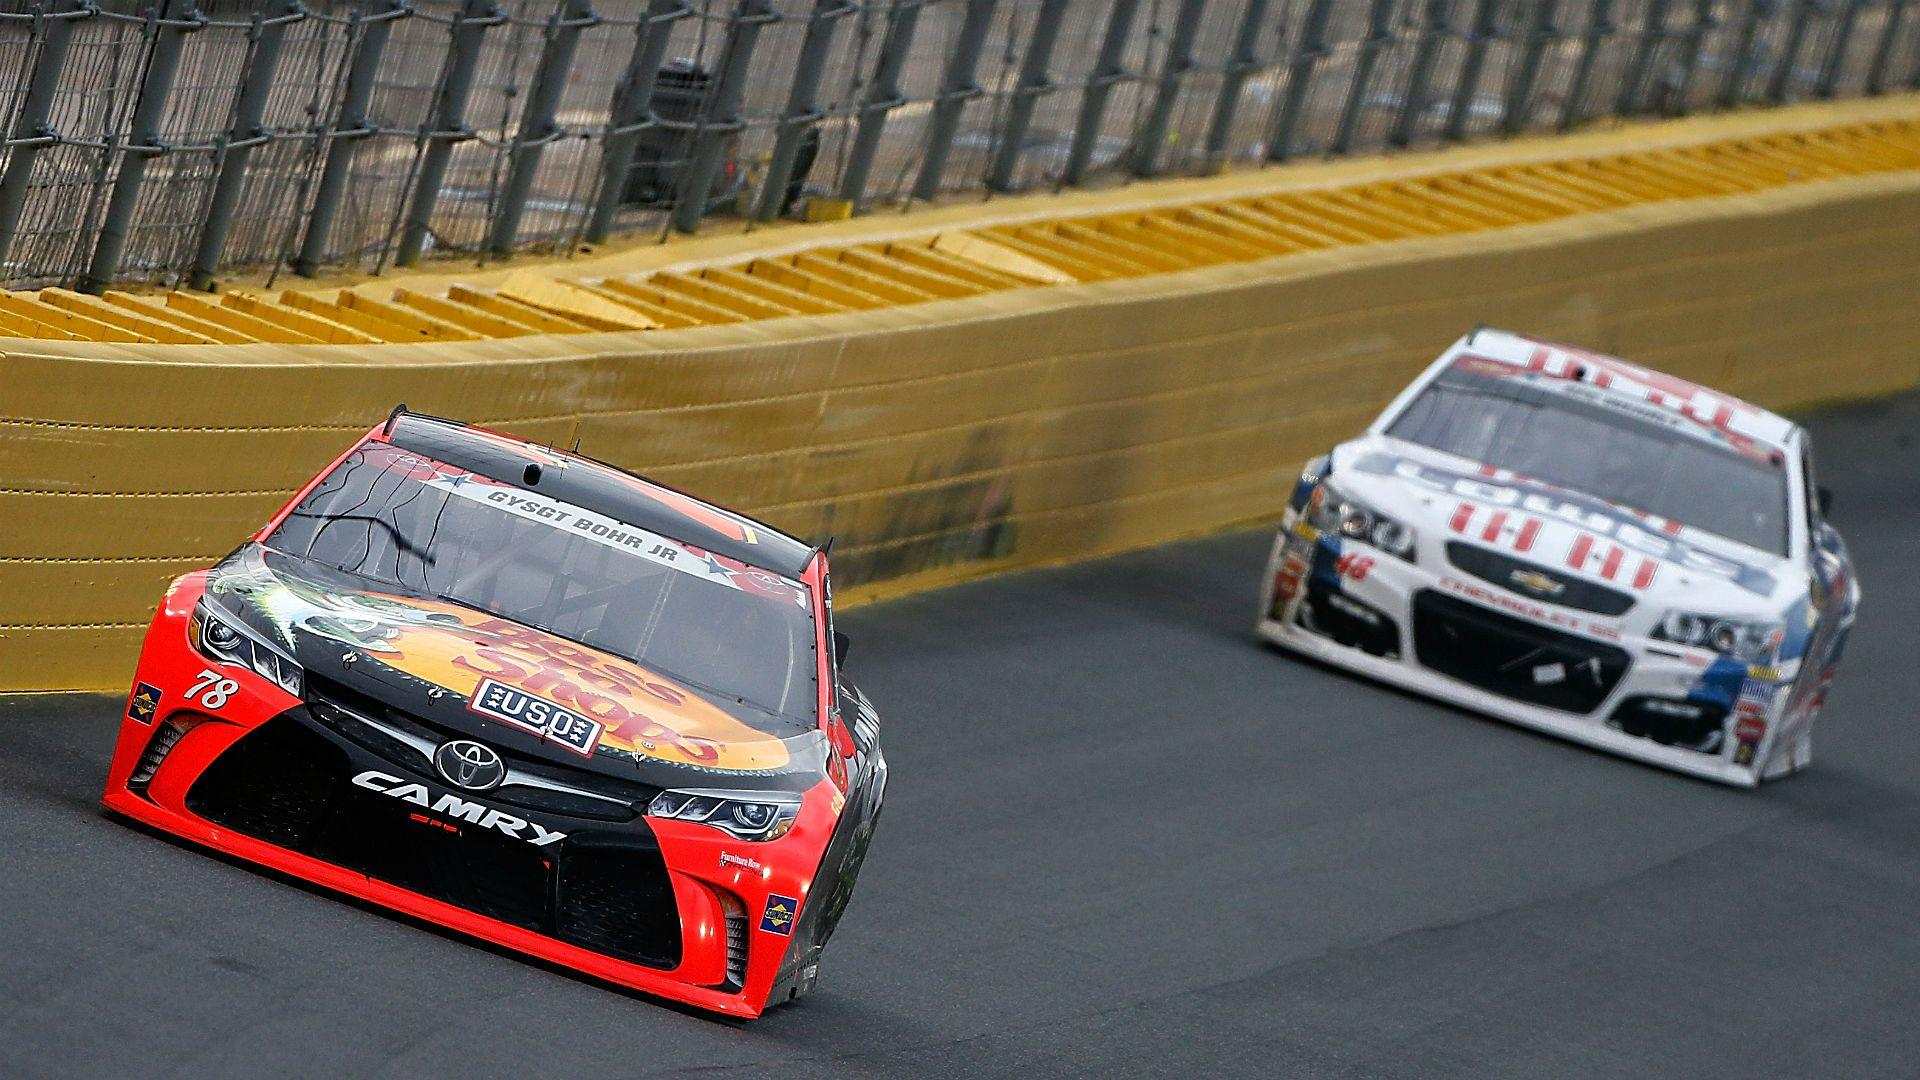 Jimmie Johnson, Kevin Harvick left to chase Martin Truex Jr. in